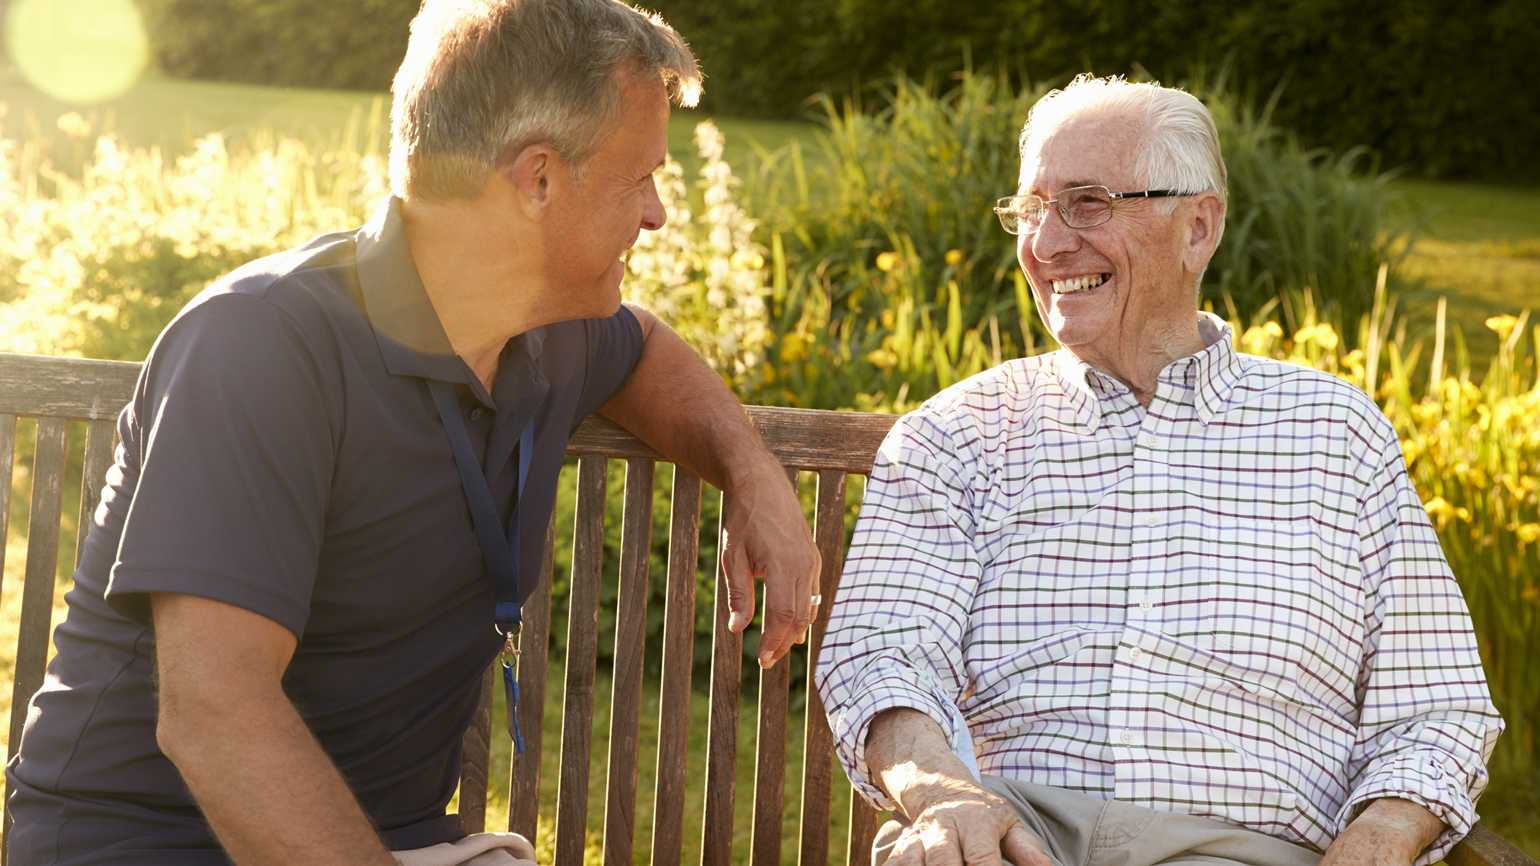 A senior father laughing with his son in conversation outside on a wooden bench.